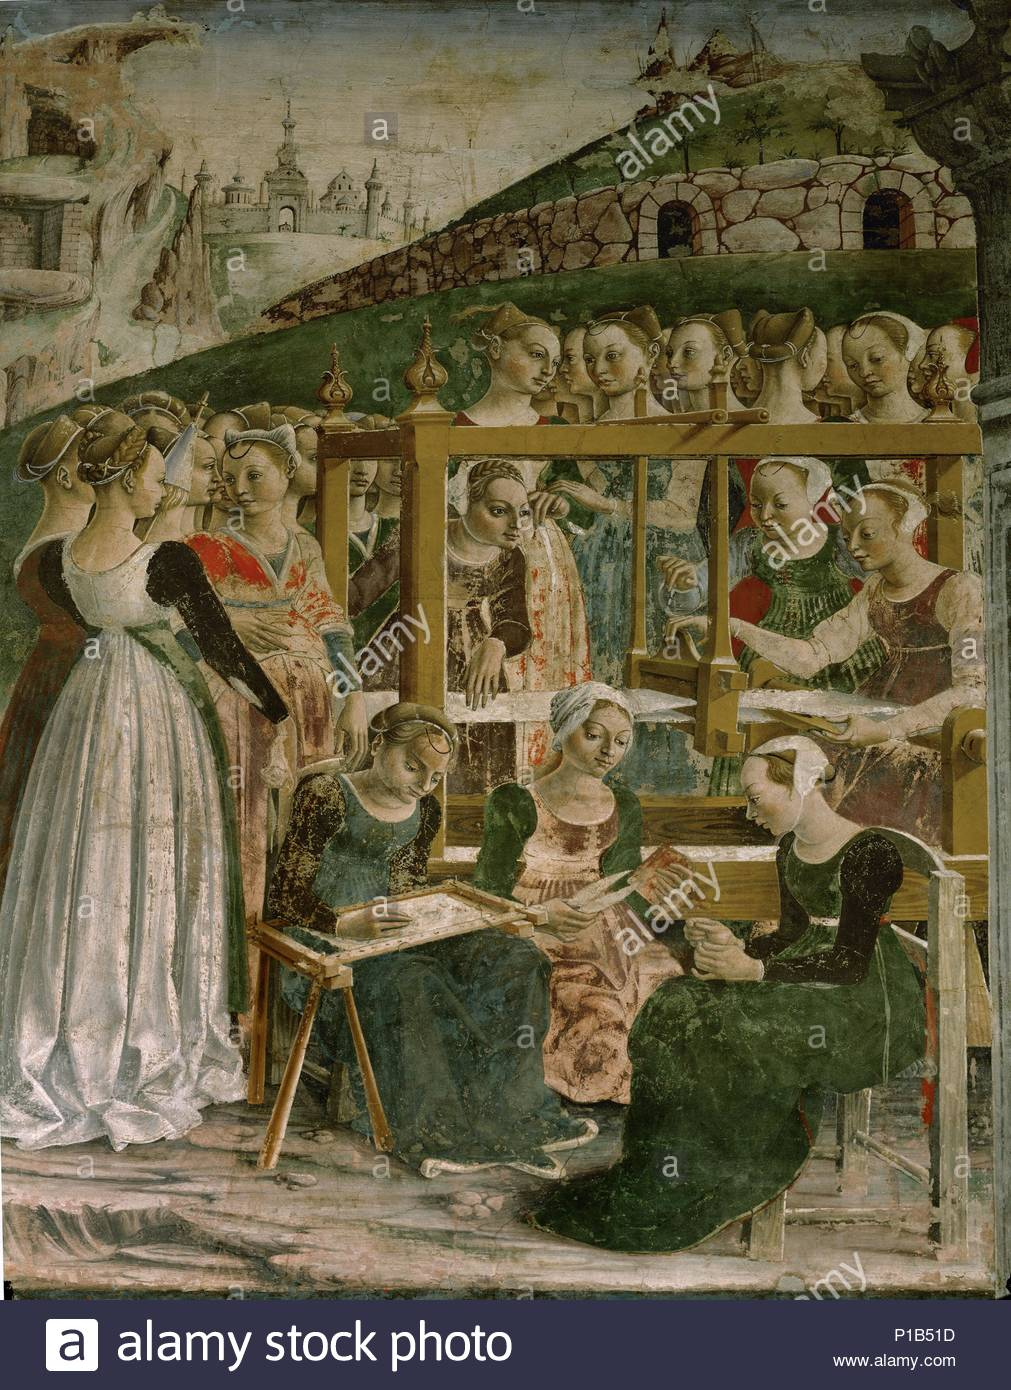 Fresco, top range, east wall (1476). Author: COSSA, FRANCESCO DEL.  Location: Palazzo Schifanoia, Ferrara, Italy.